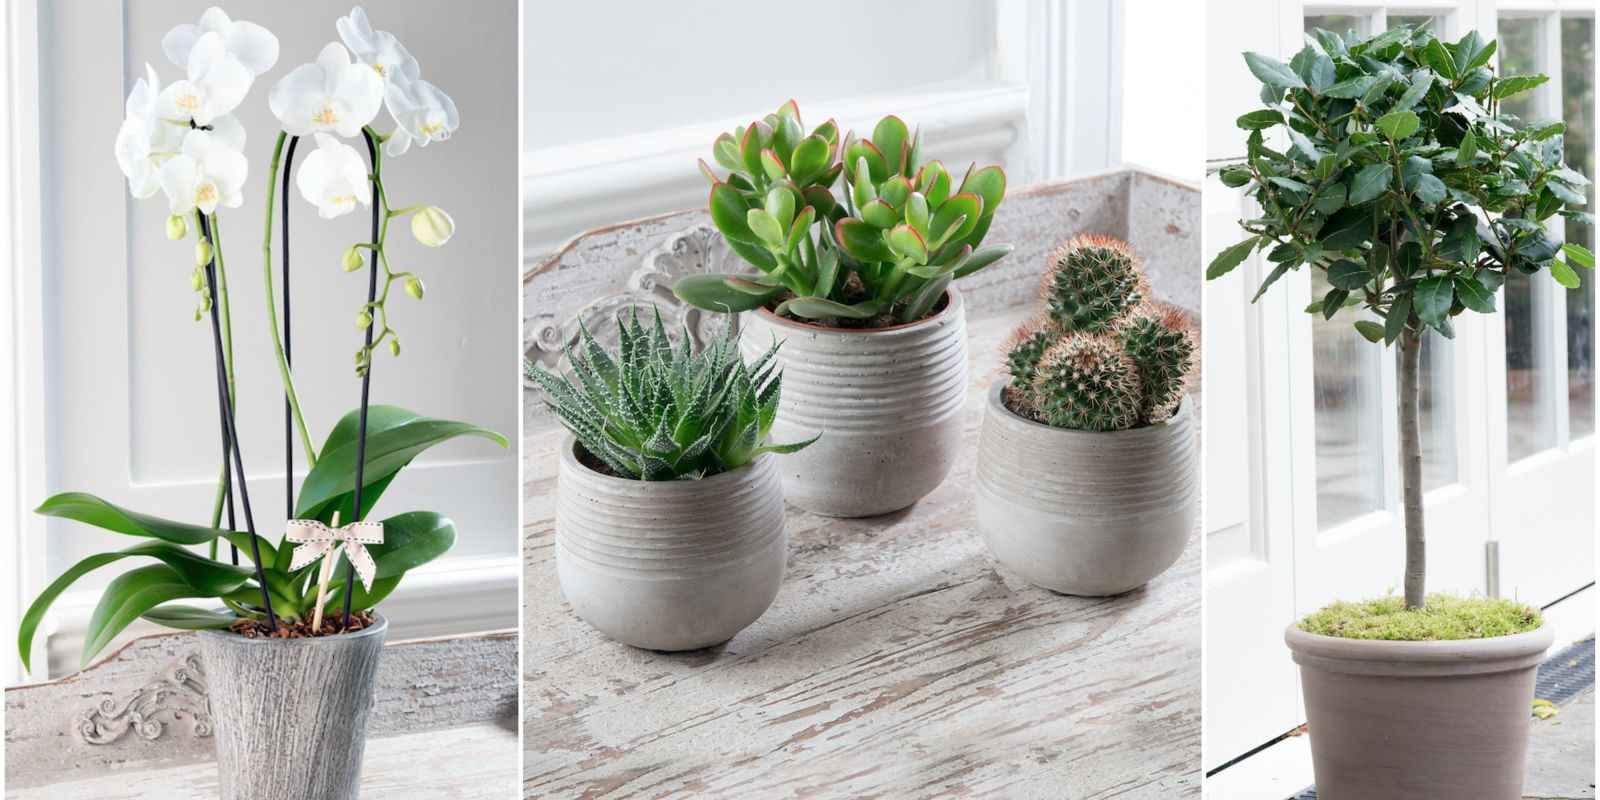 Stylish potted plants from the house beautiful collection at flowers direct - Home plants types ...